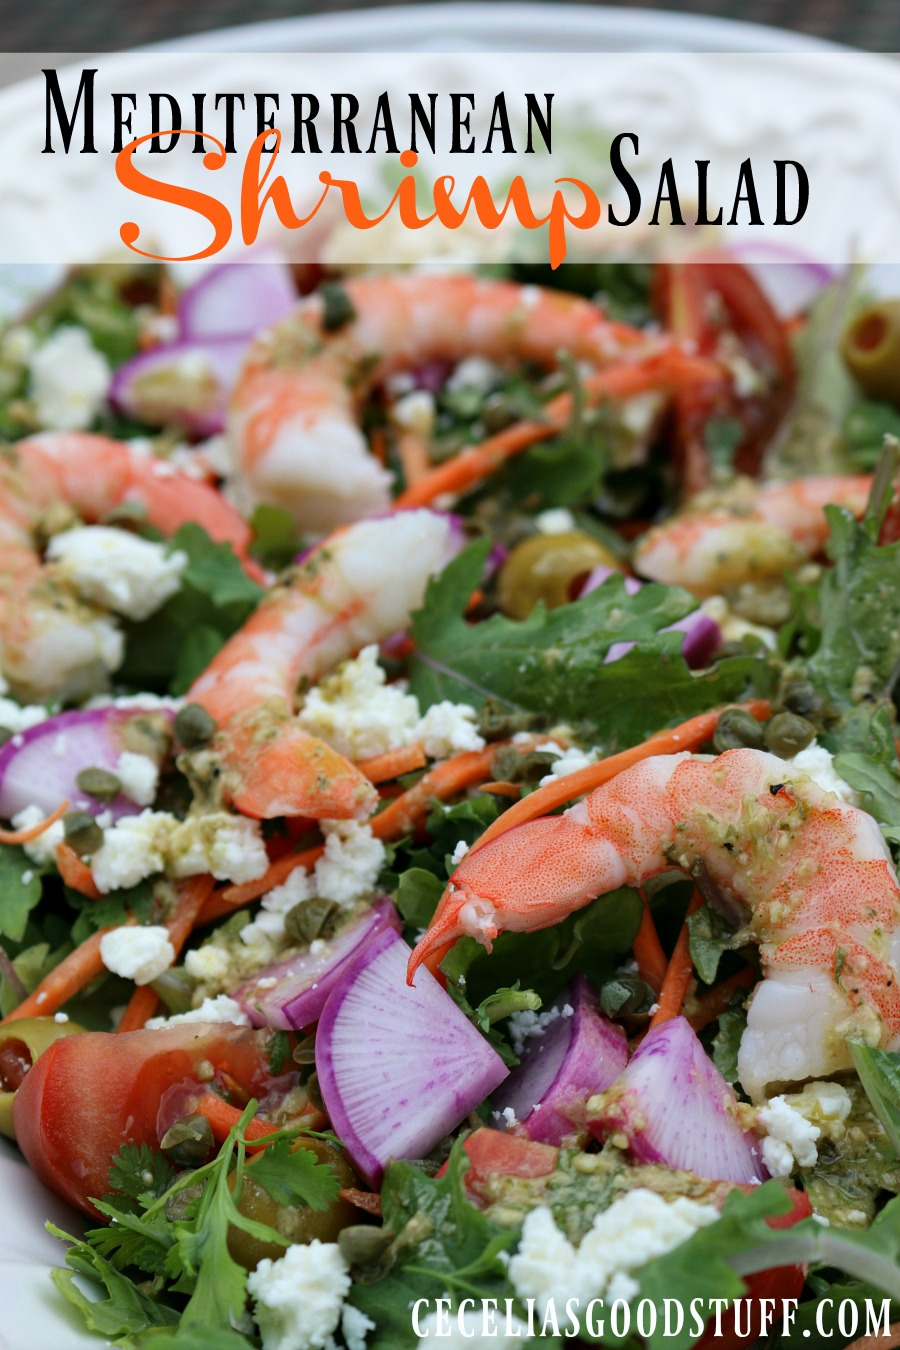 Recipe for Mediterranean Shrimp Salad